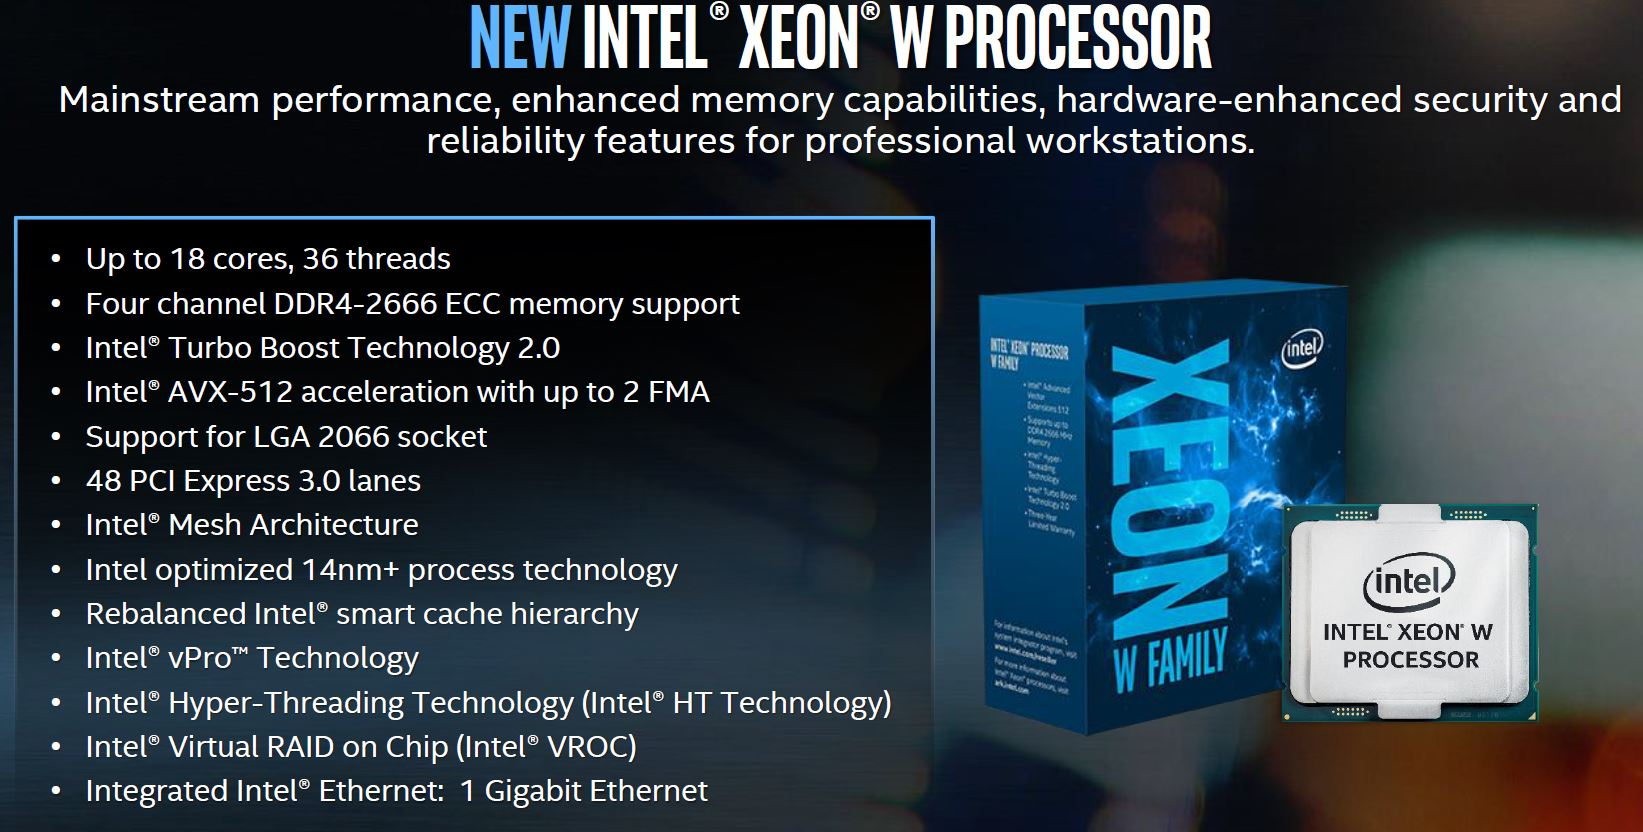 Intel Xeon W Processor Overview